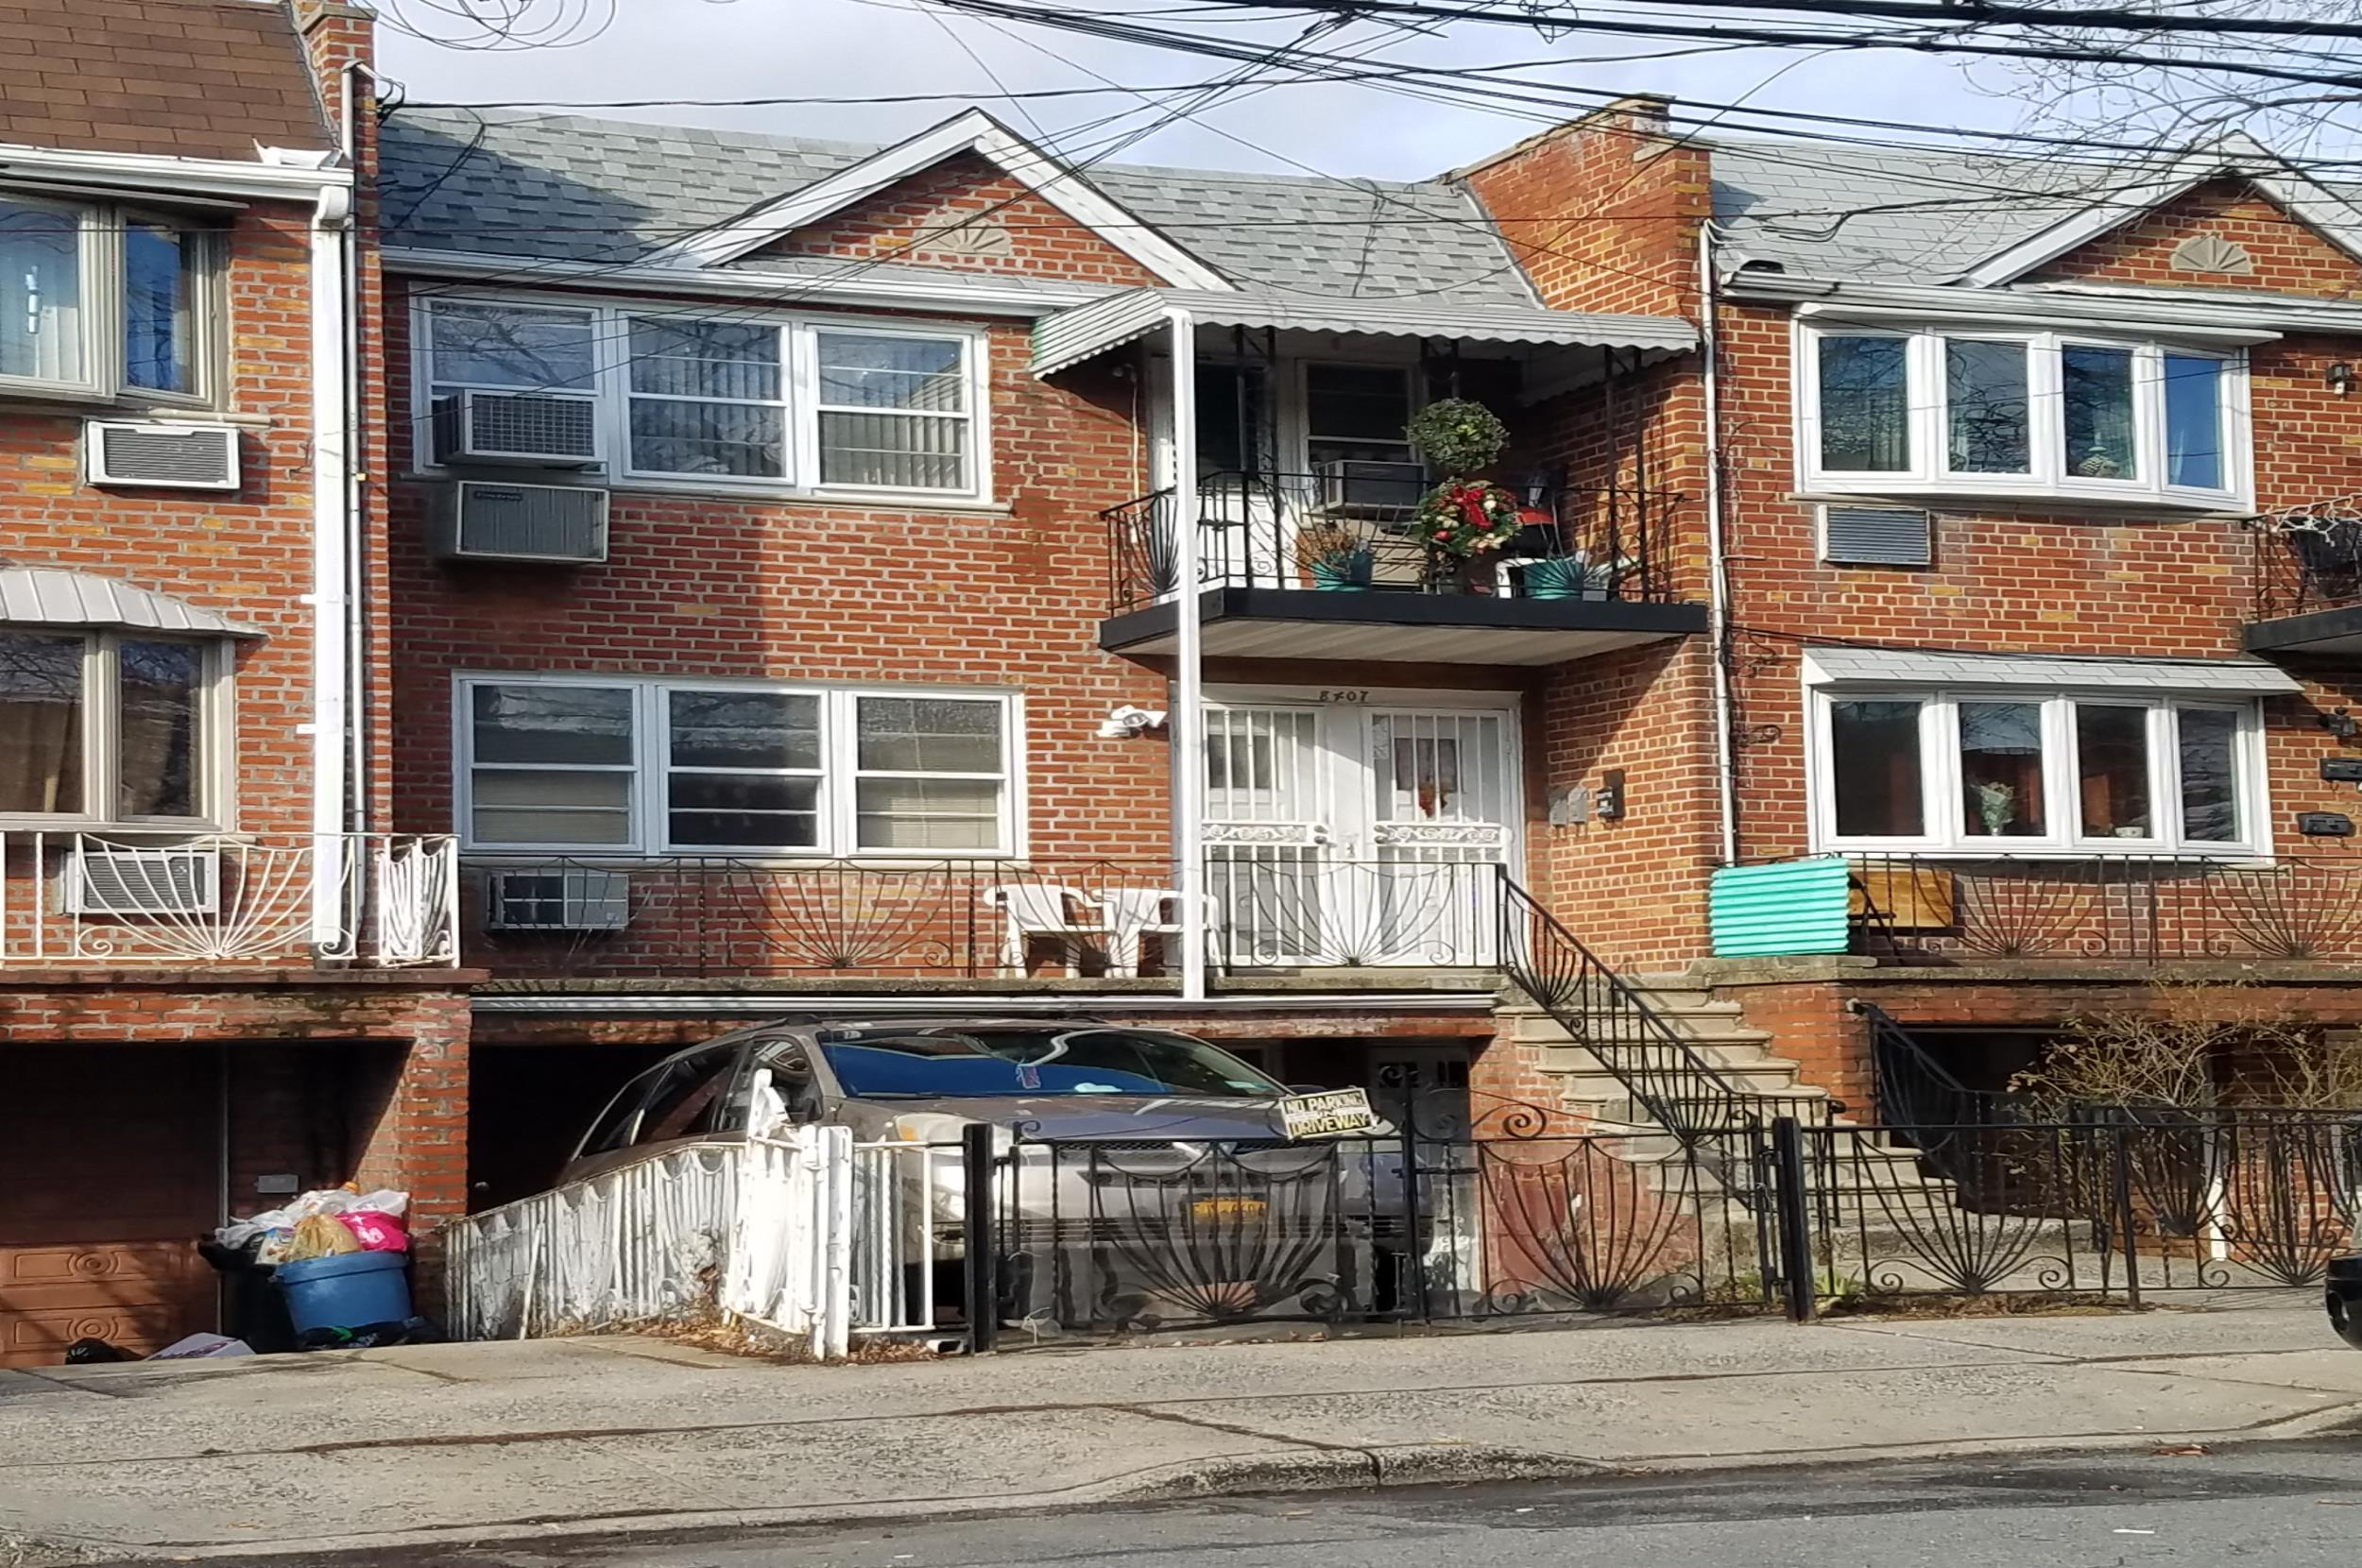 Brick 3 family home for sale canarsie brooklyn 715 000 - One bedroom apartments in canarsie brooklyn ...